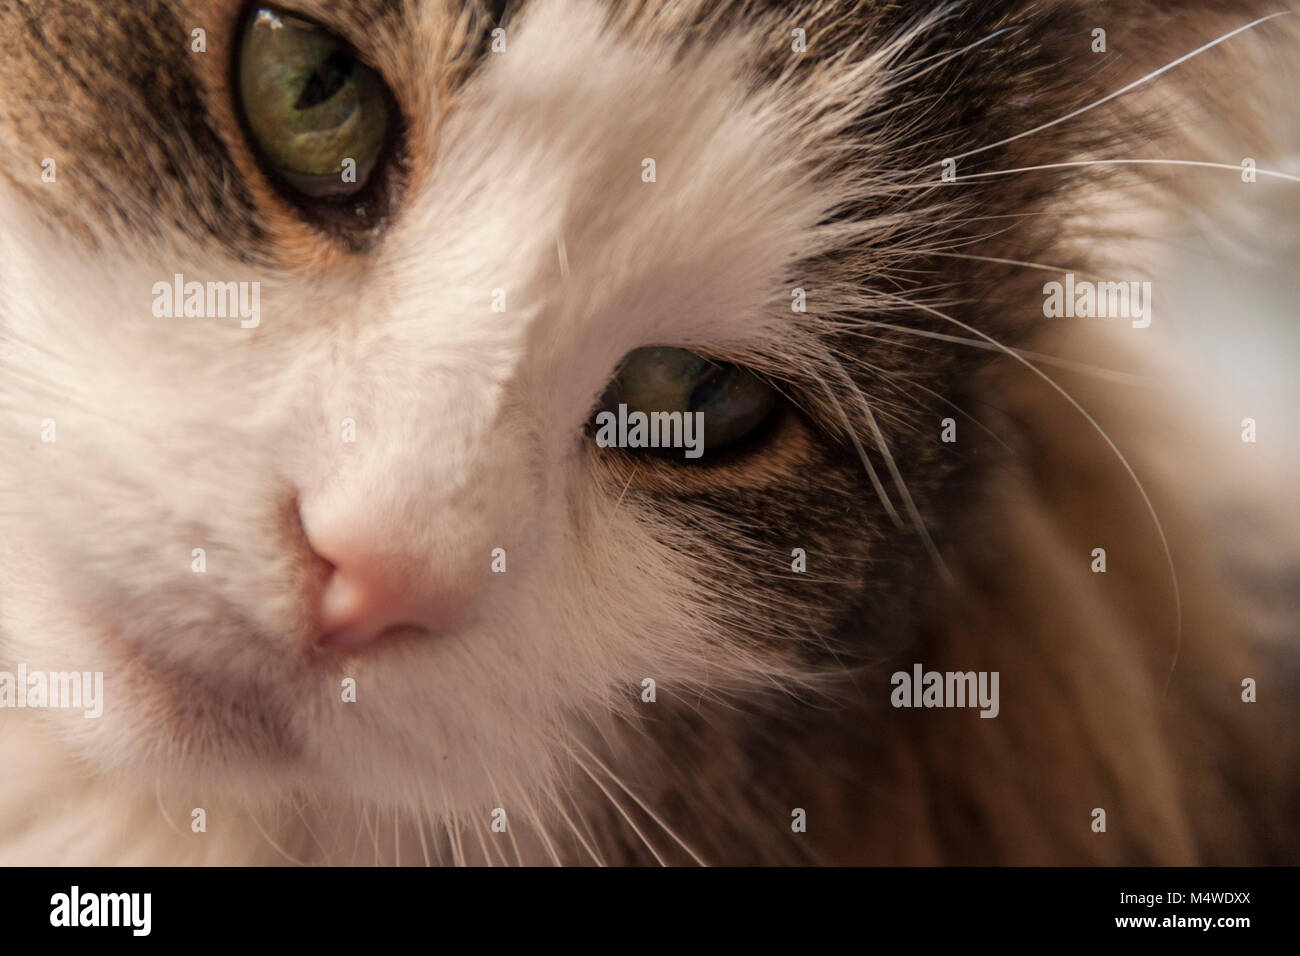 Tortoiseshell and white cat, Norwegian Forest cat,long haired,close up of green eyes and head. - Stock Image